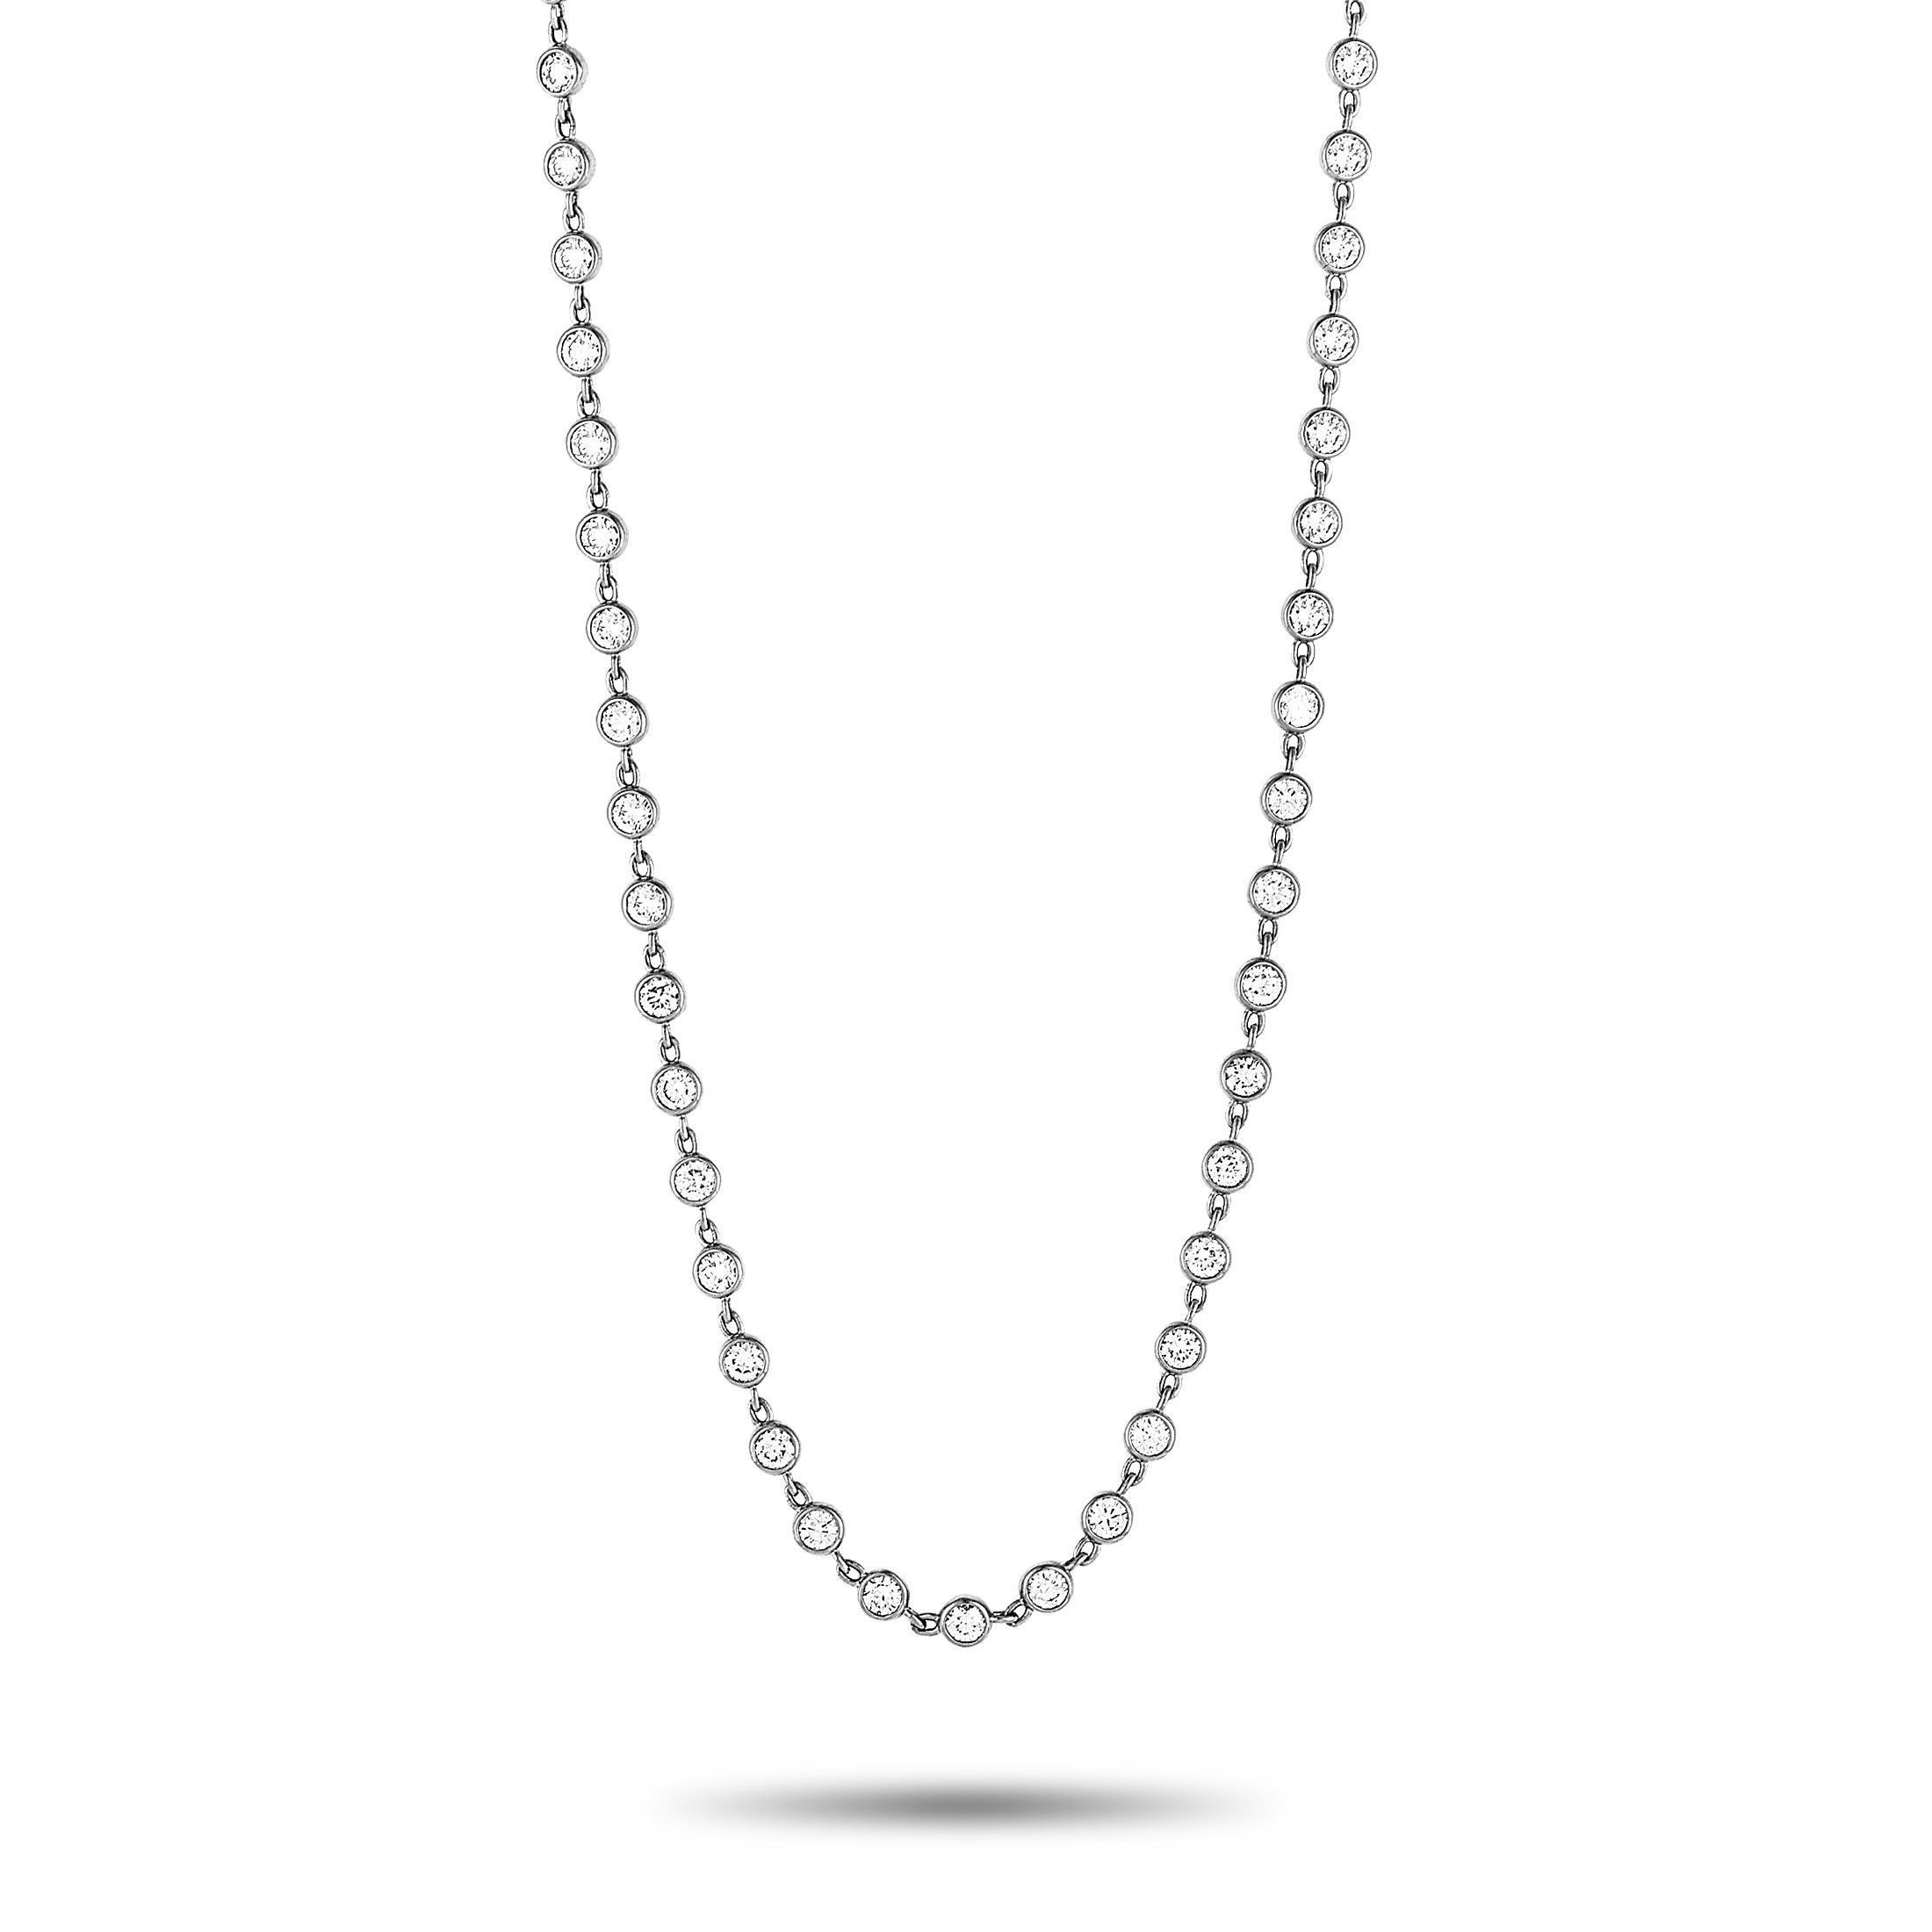 Lb Exclusive 18K White Gold Diamond Sautoir Necklace For Most Recently Released Diamond Sautoir Necklaces In Yellow Gold (View 14 of 25)